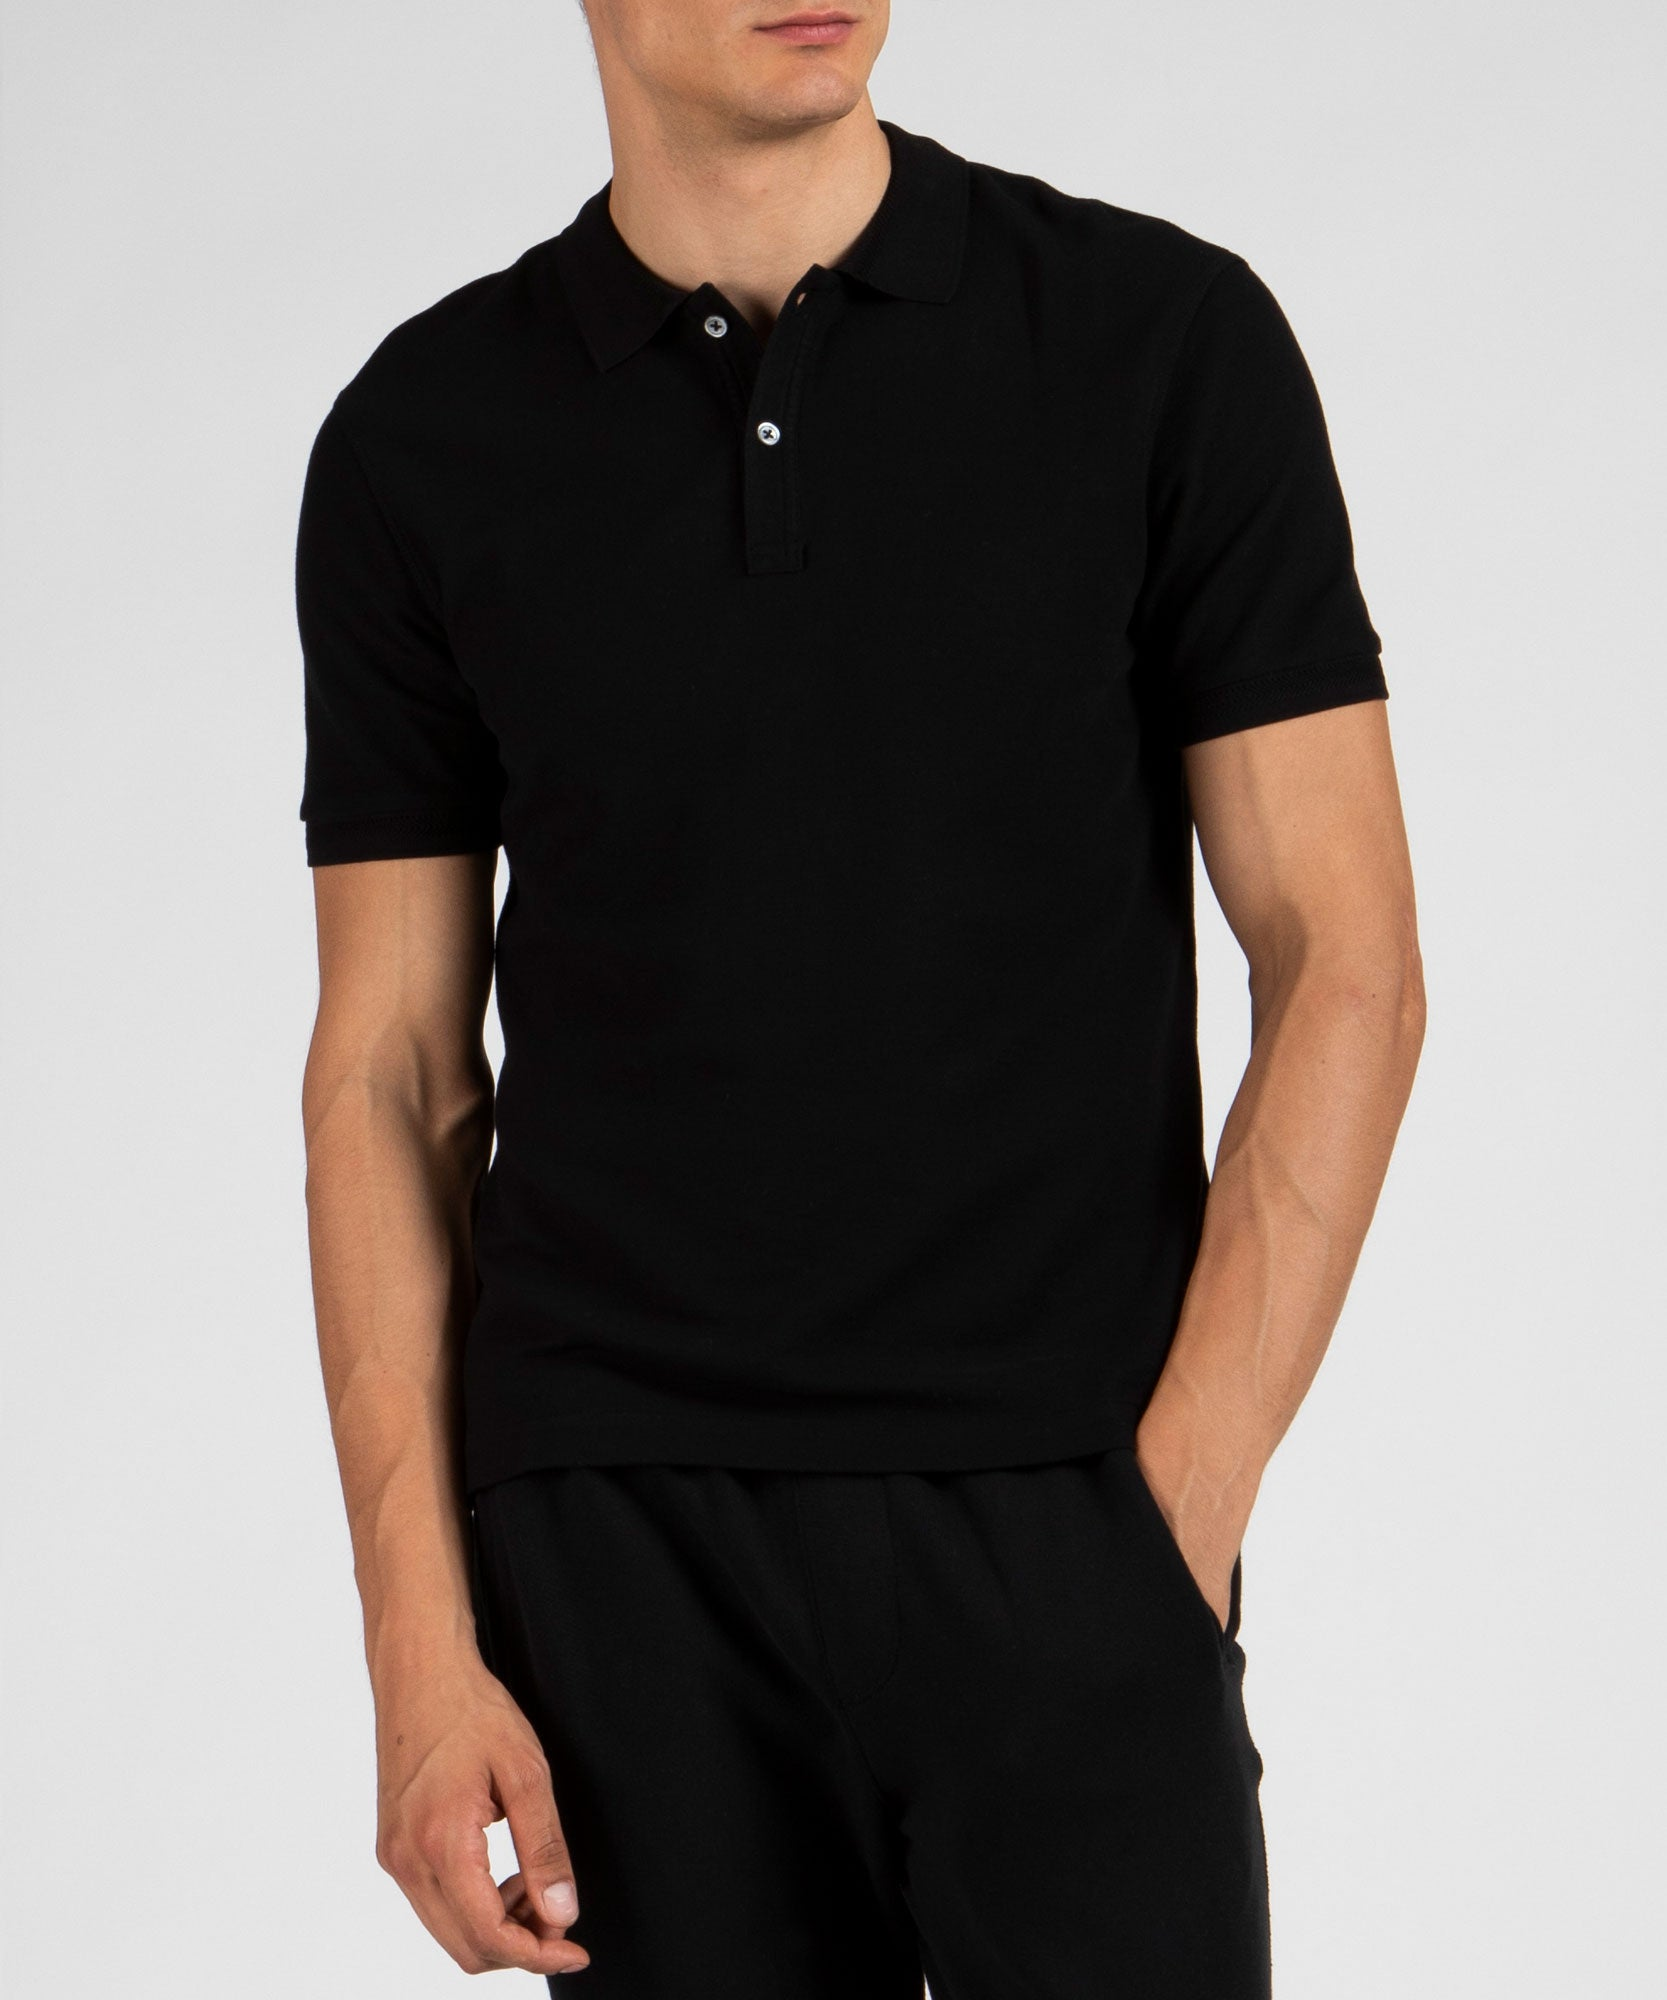 Black Cotton Pique Classic Polo - Men's Polo Shirt by ATM Anthony Thomas Melillo